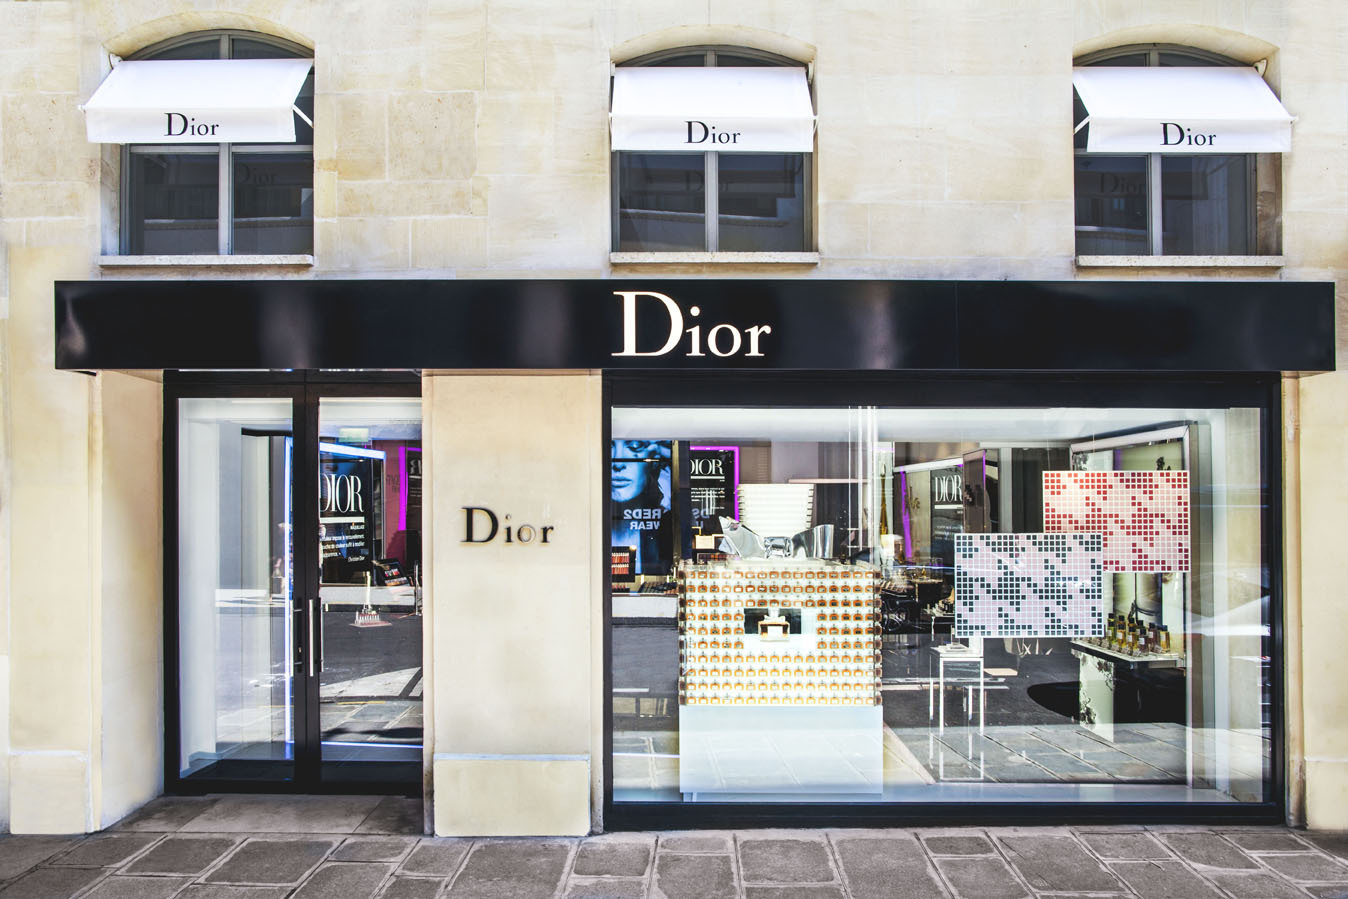 dior ouvre une boutique ph m re paris pour sa ligne de. Black Bedroom Furniture Sets. Home Design Ideas